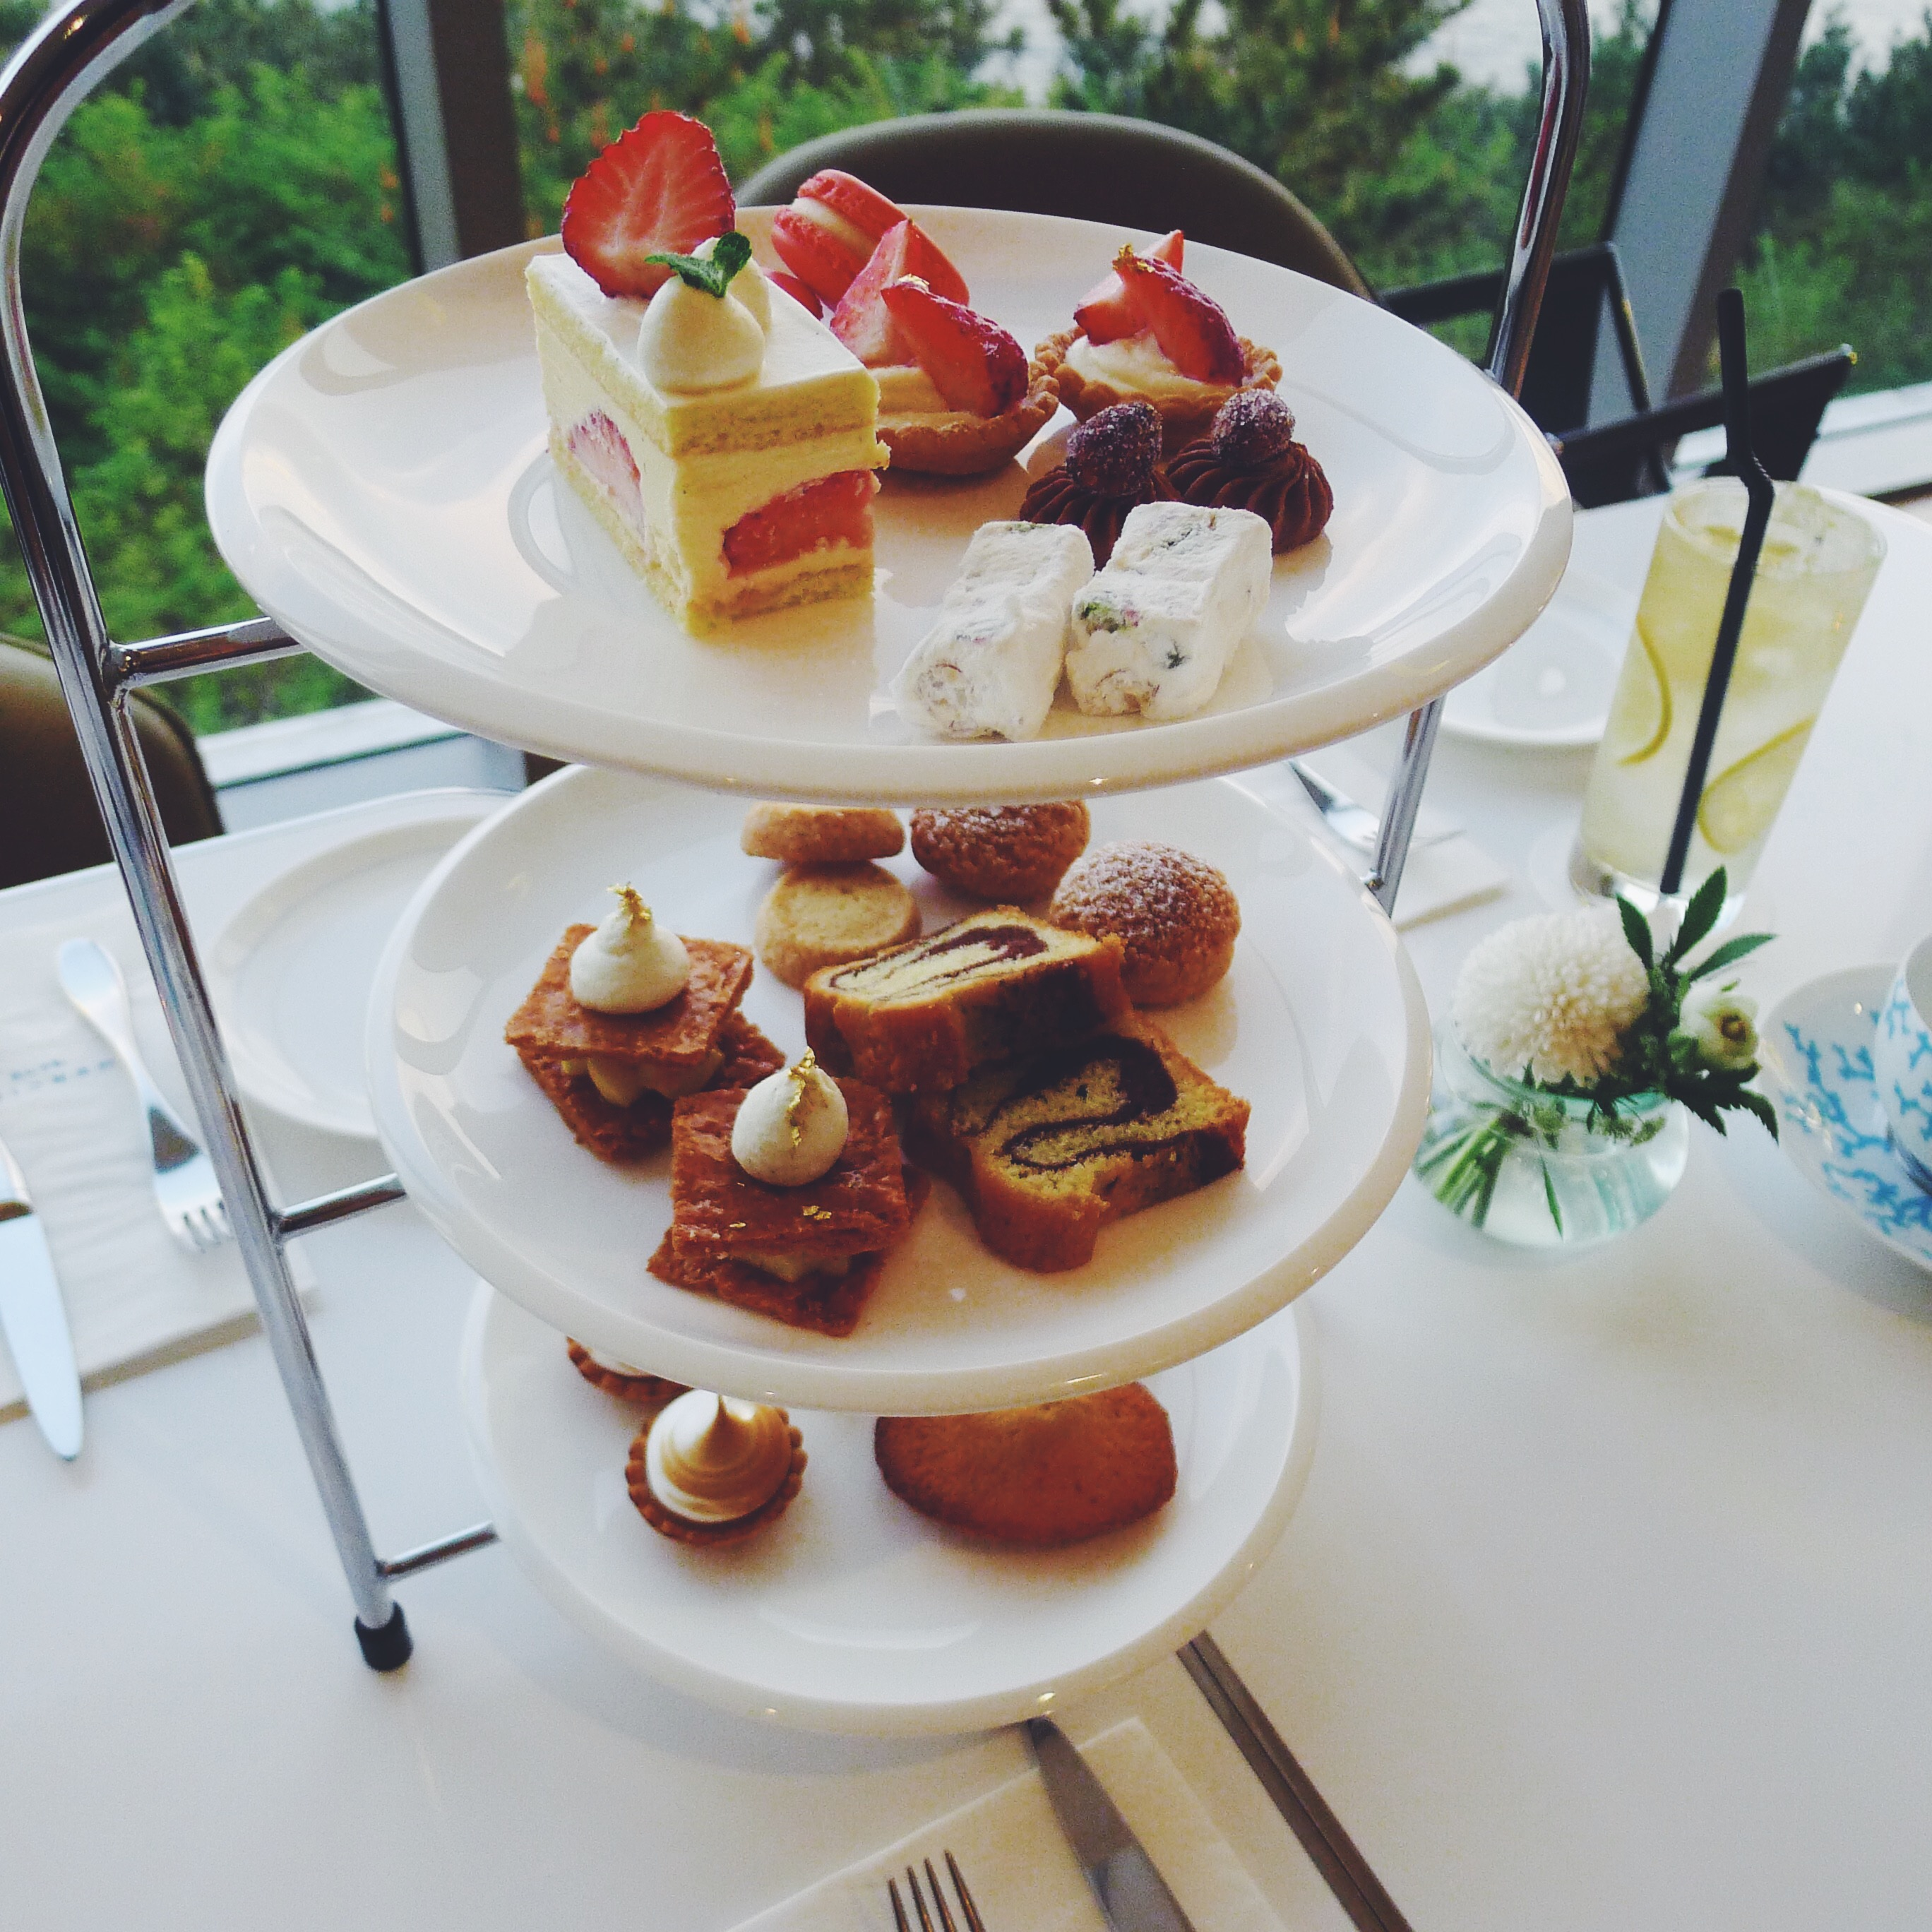 The French Full Tea Set: includes a selection of desserts and coffee or tea